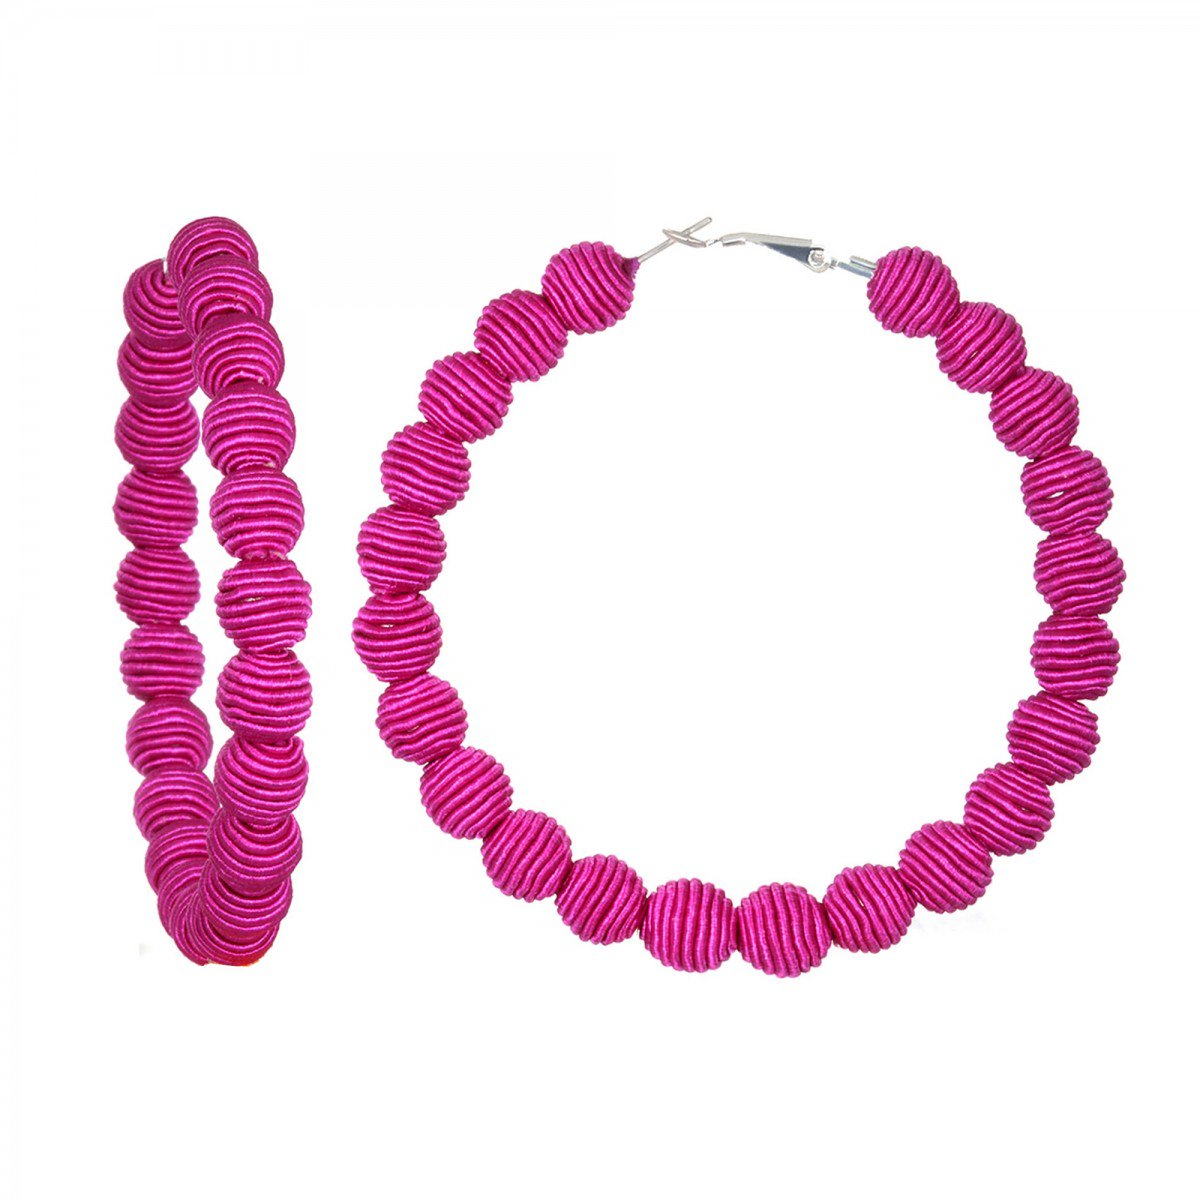 Fuchsia Hoop Earrings by SUZANNA DAI